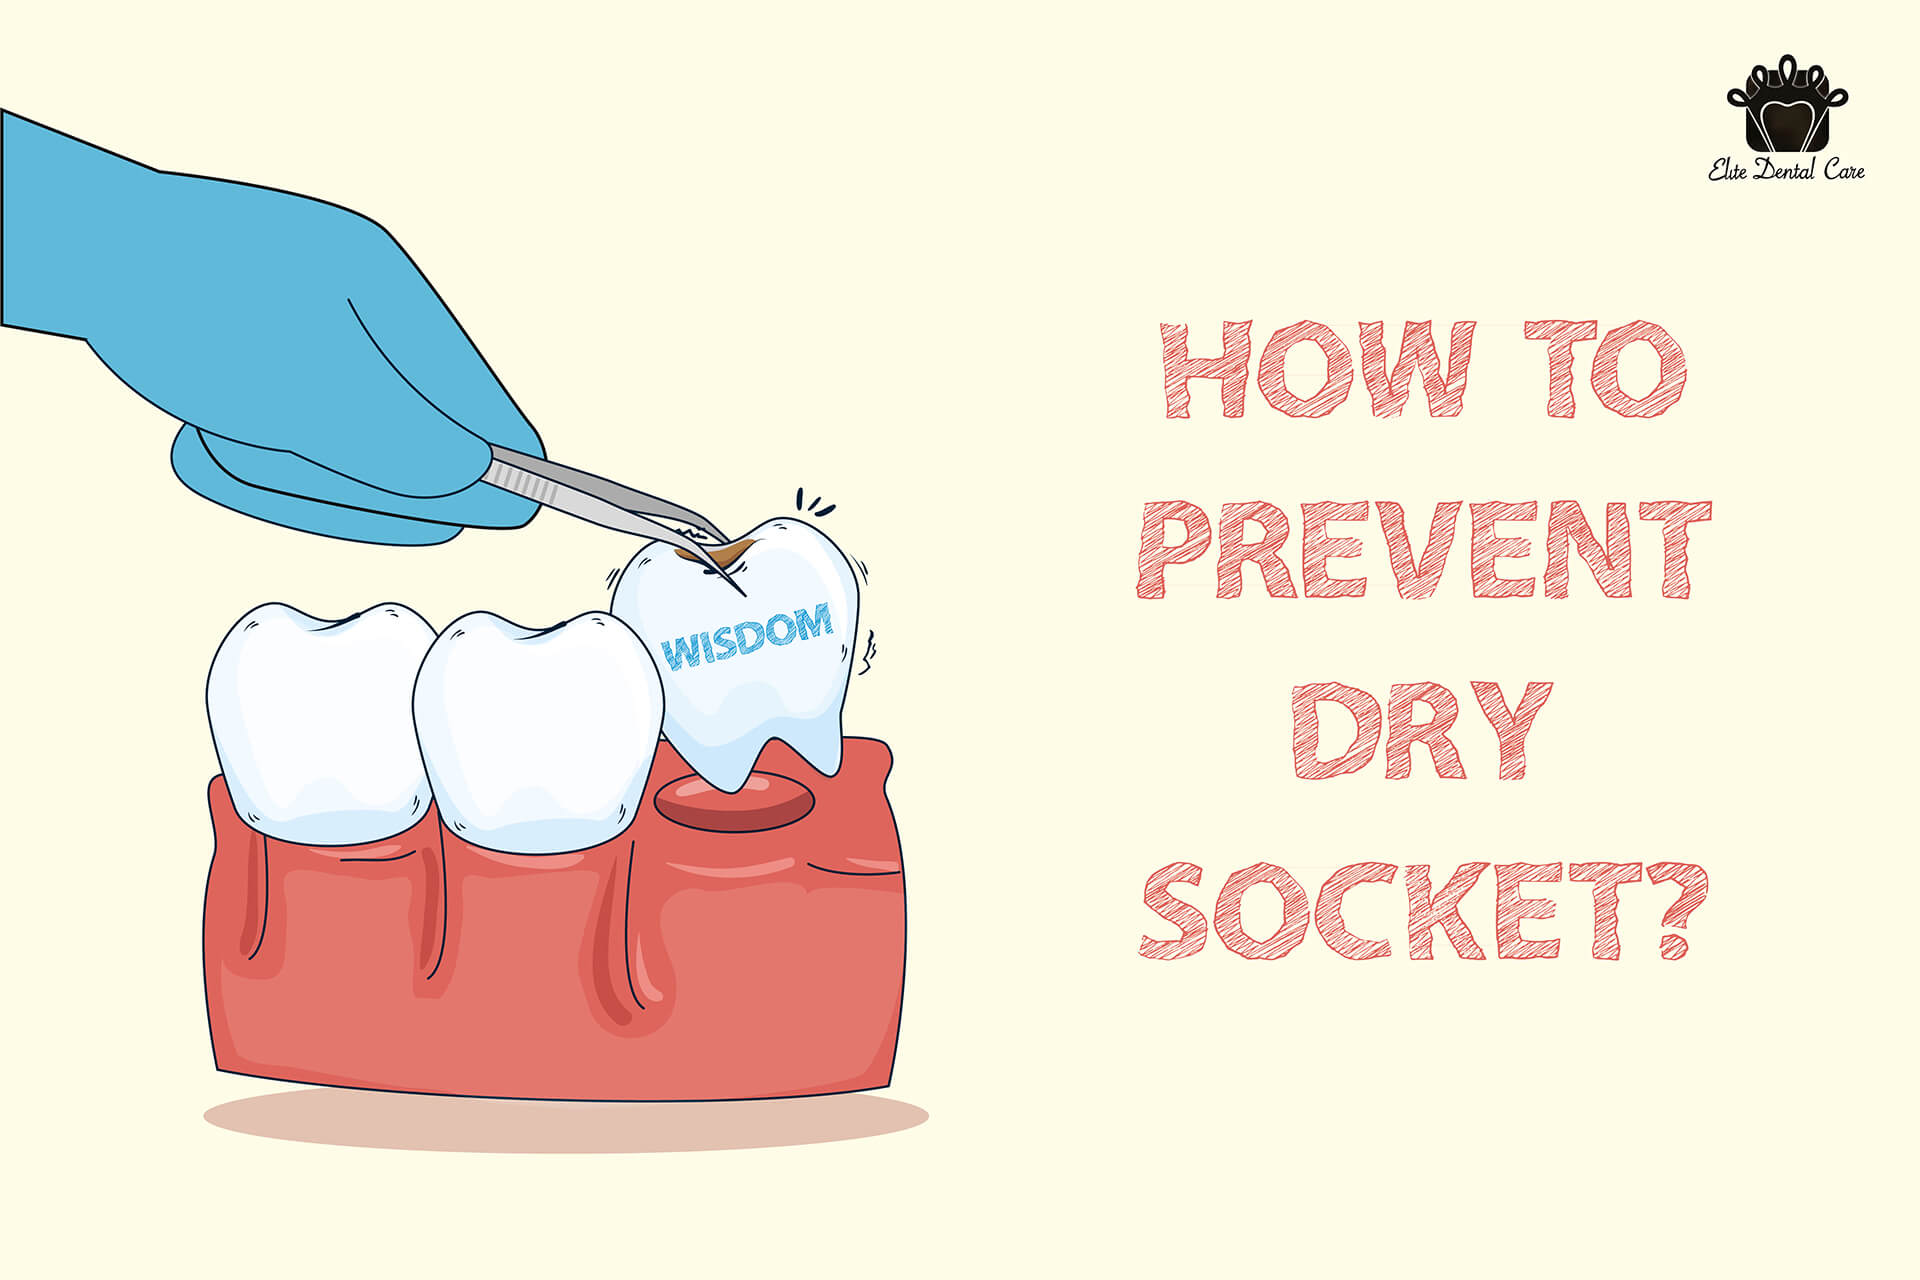 Pulled Out Wisdom Teeth? How to Prevent Dry Socket